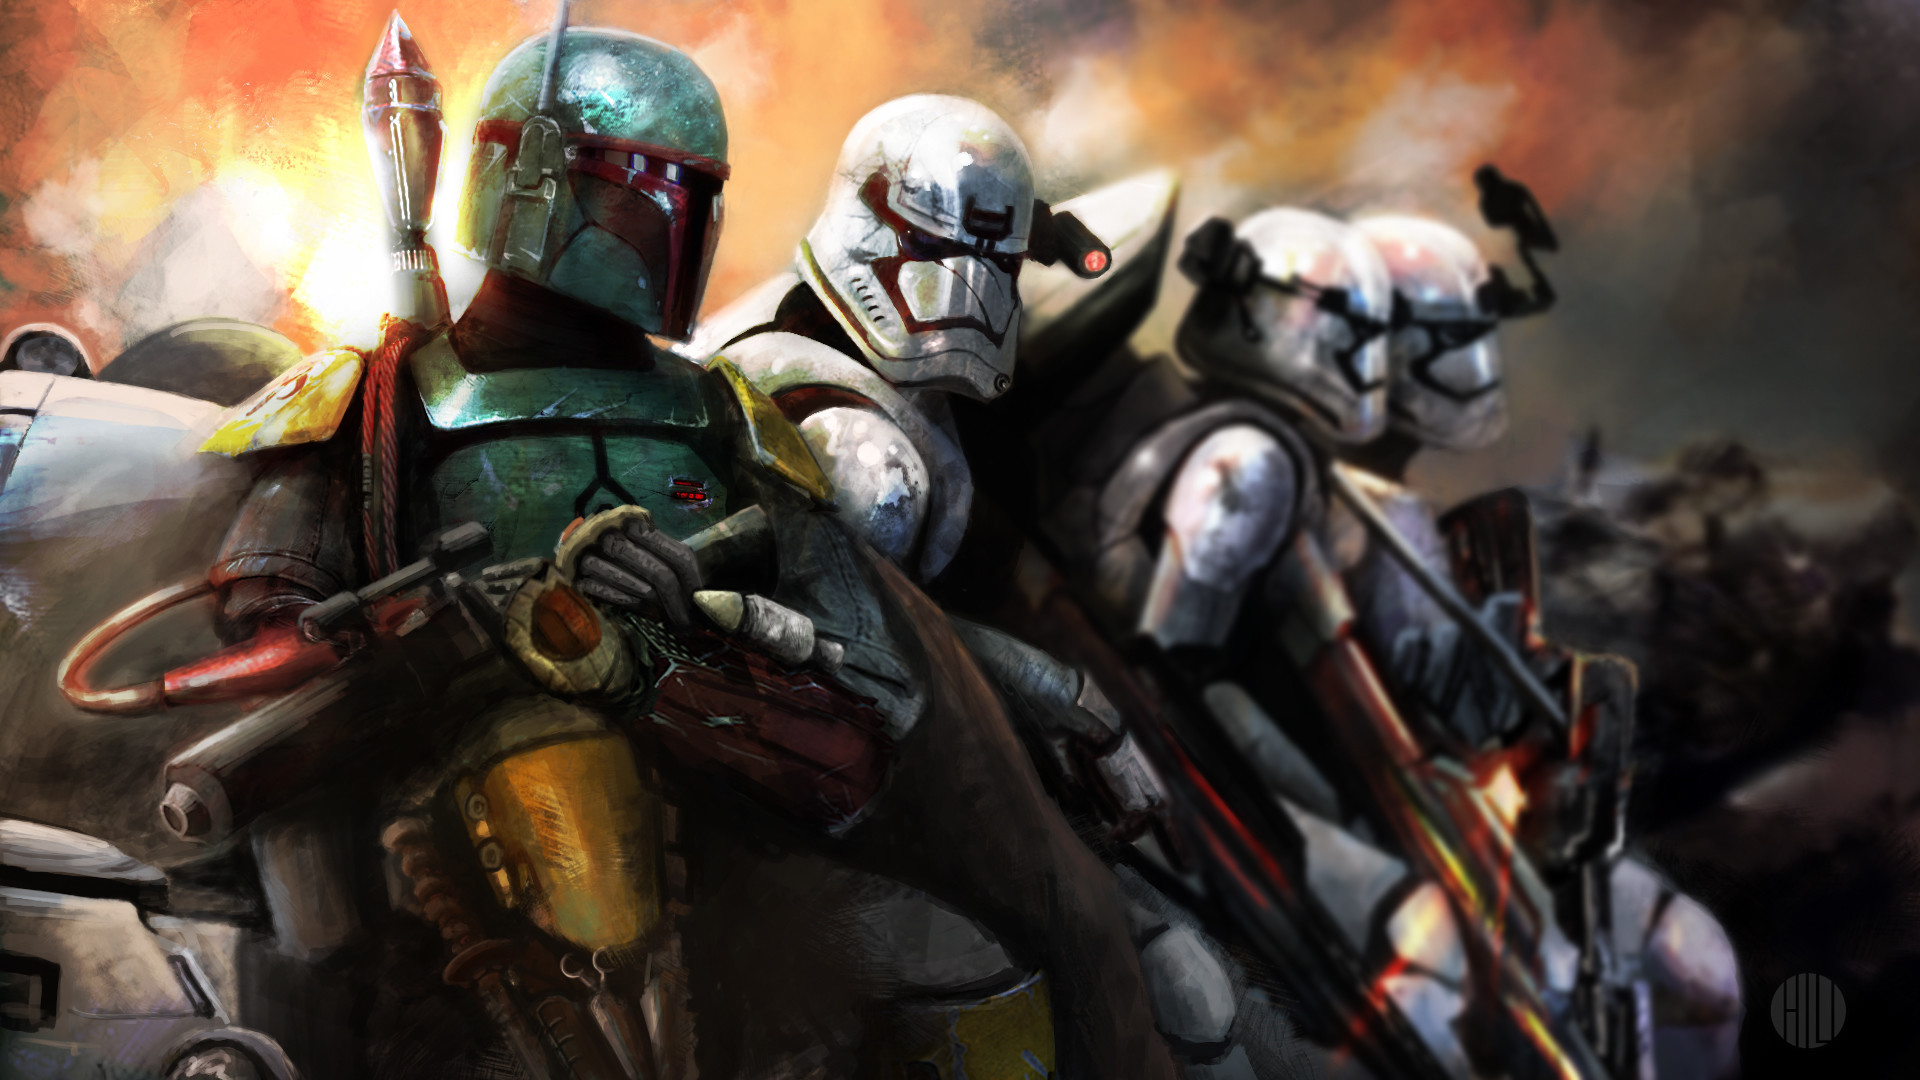 Boba Fett with First Order ERT squad